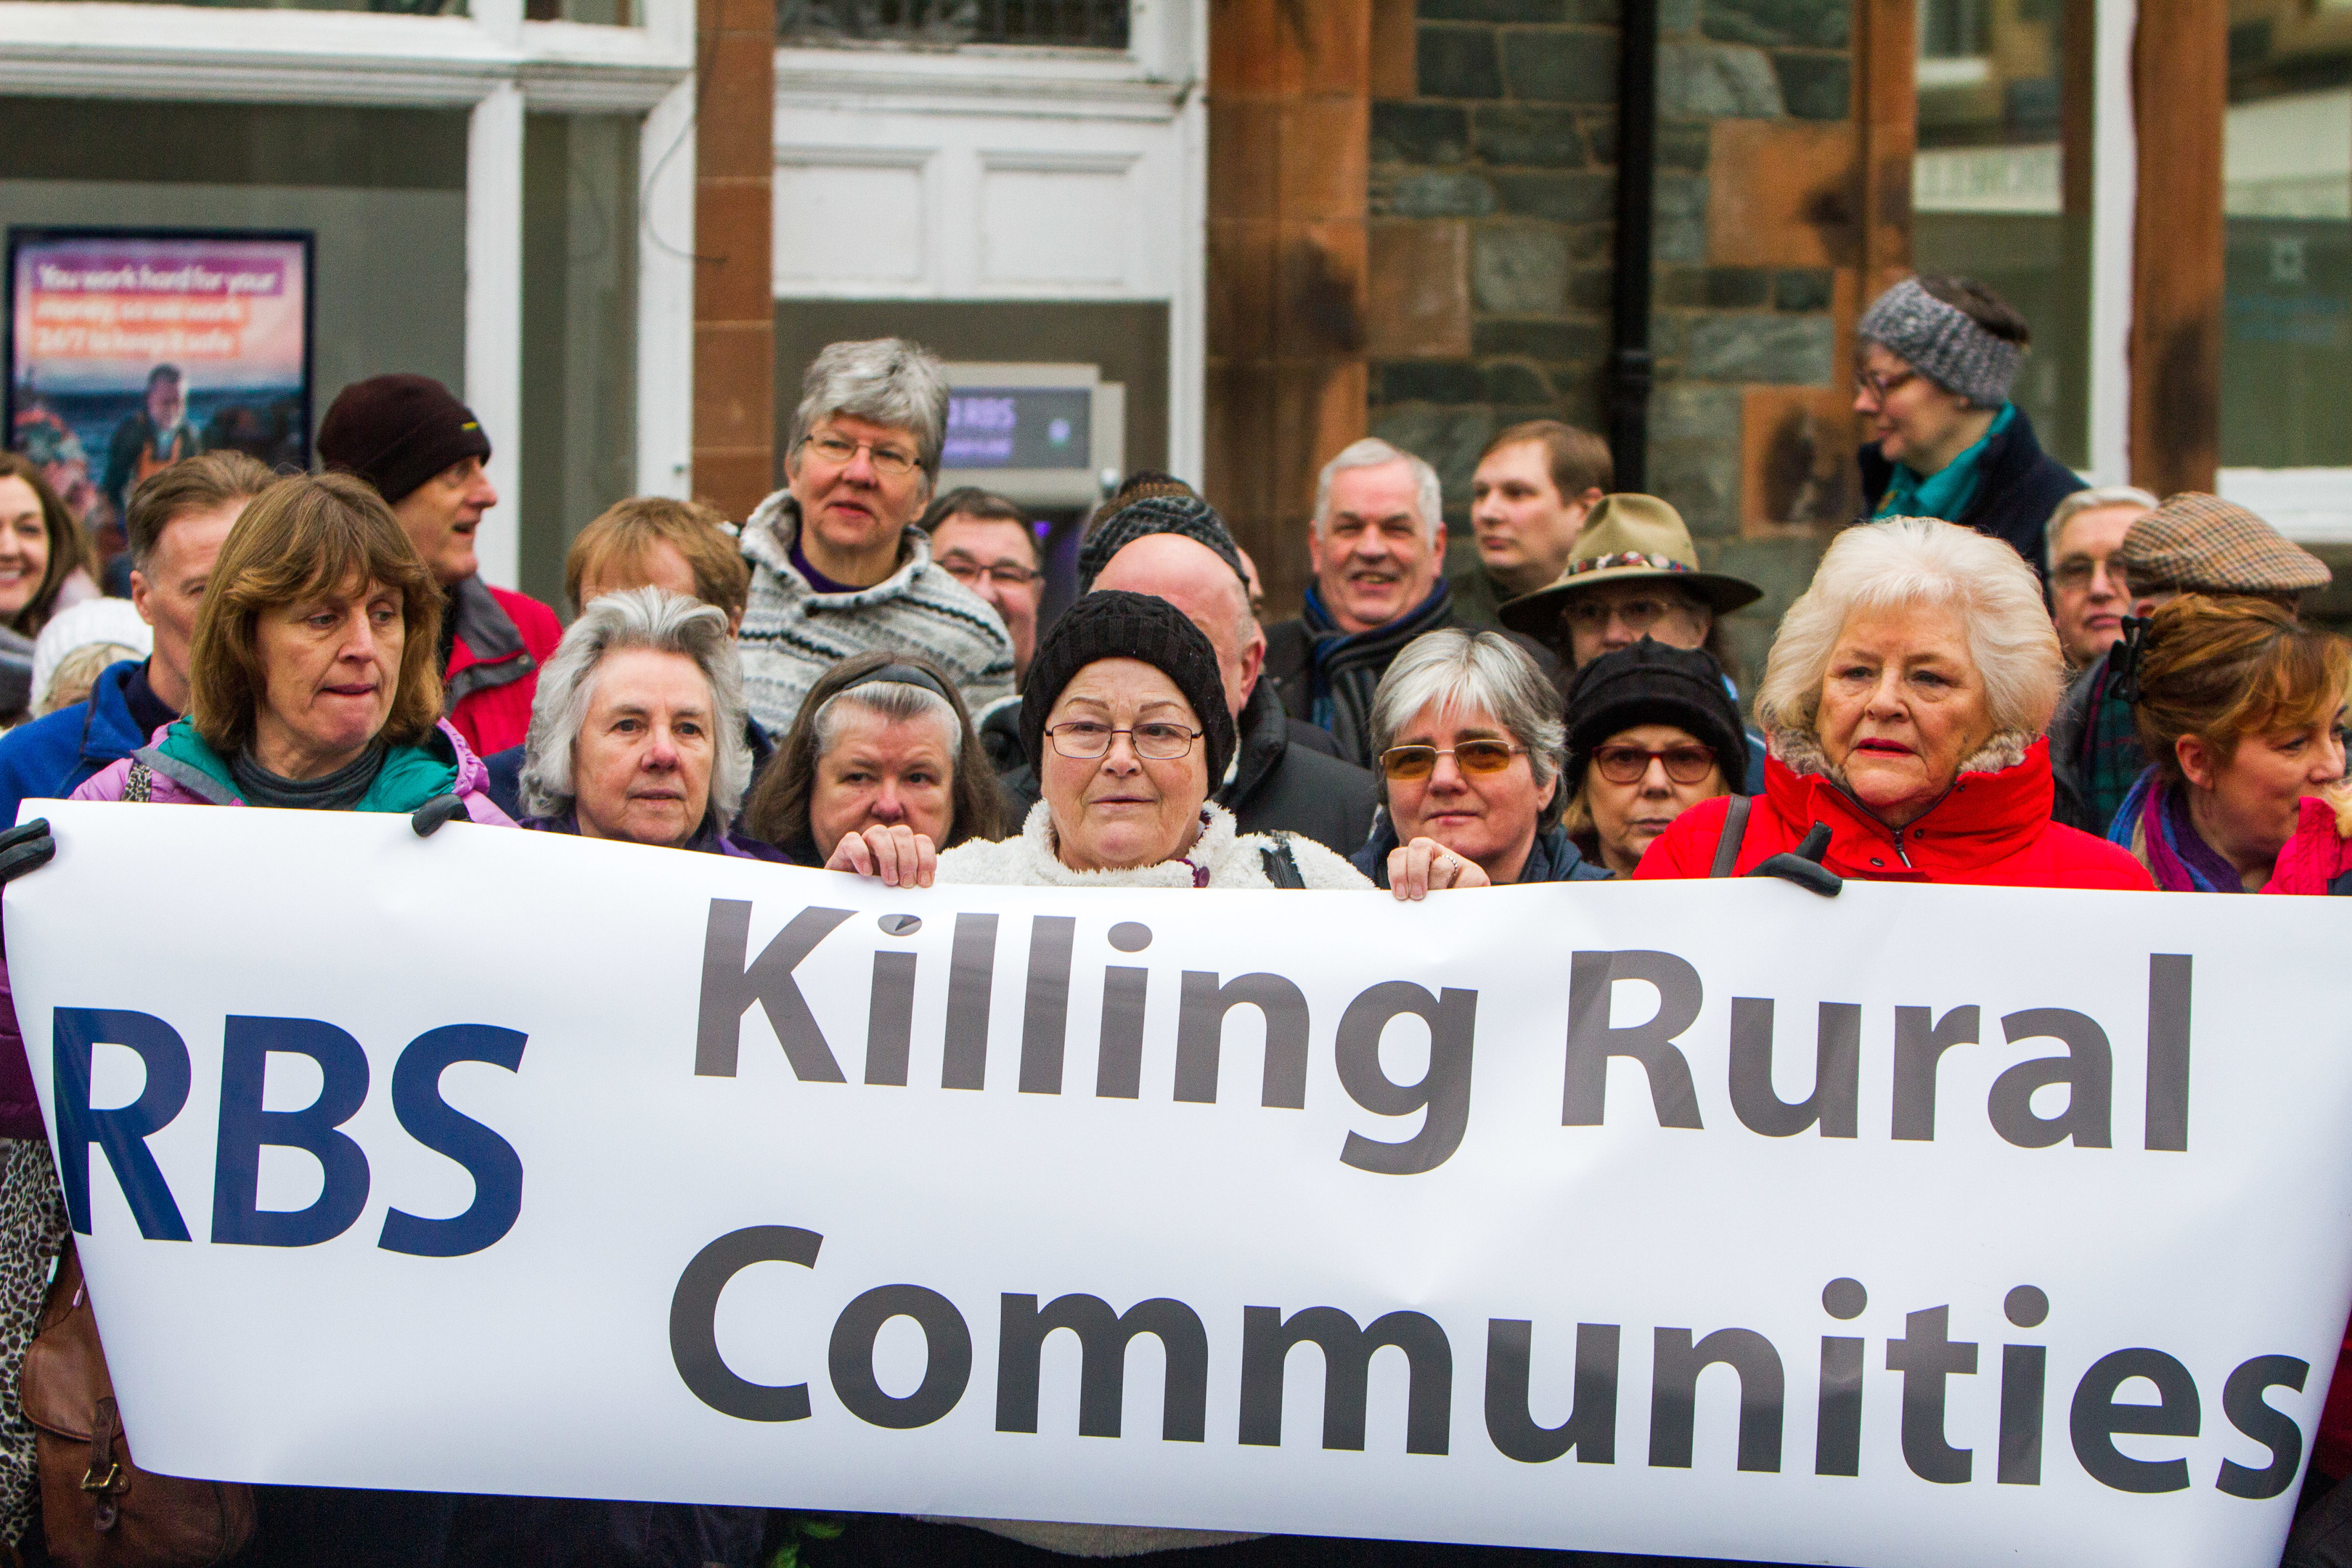 Aberfeldy protests against the closure of its RBS branch.